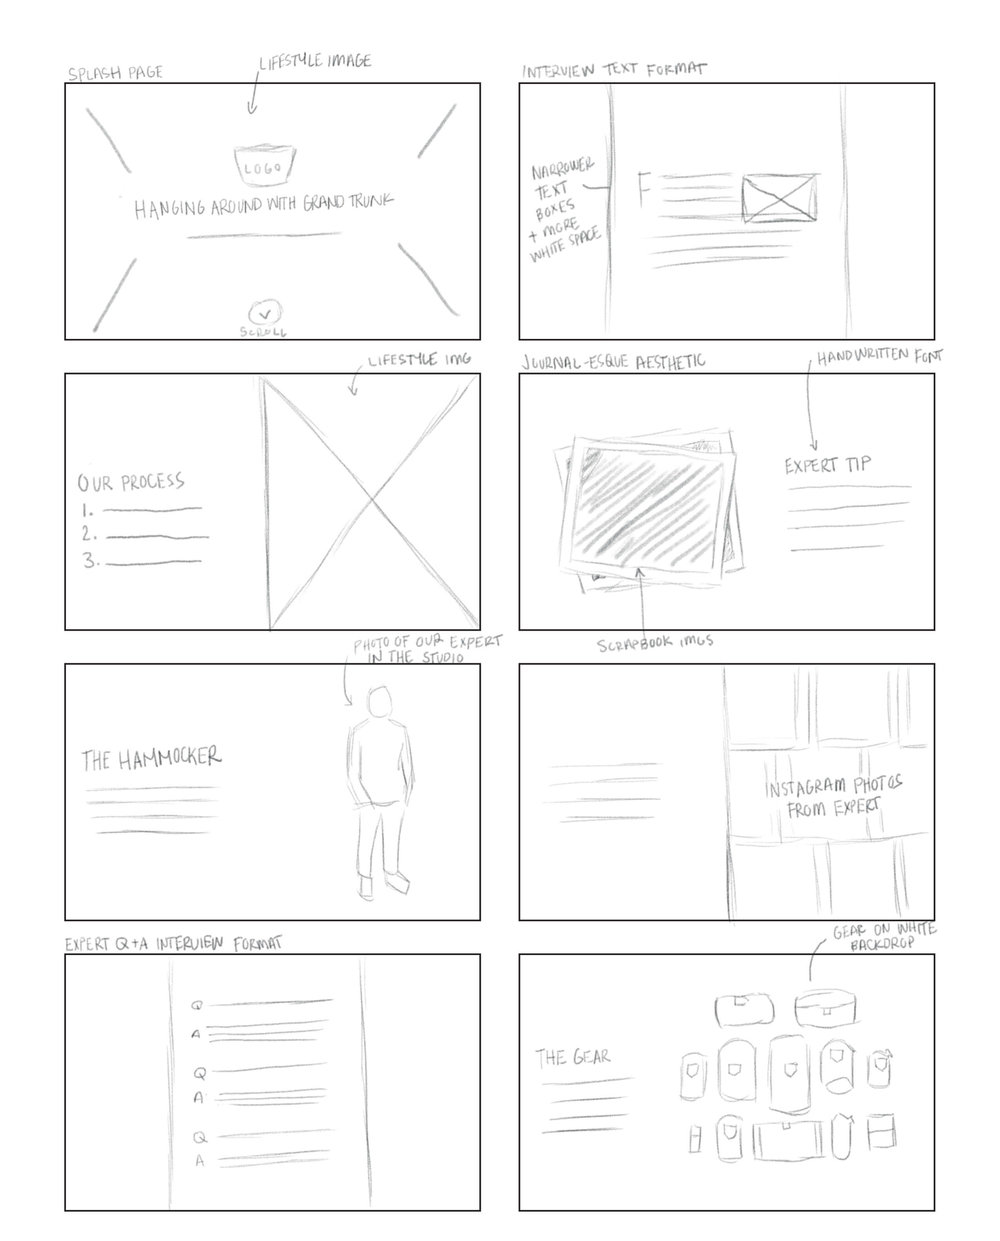 Rough sketches of the layout for the Grand Trunk eLearning campaign